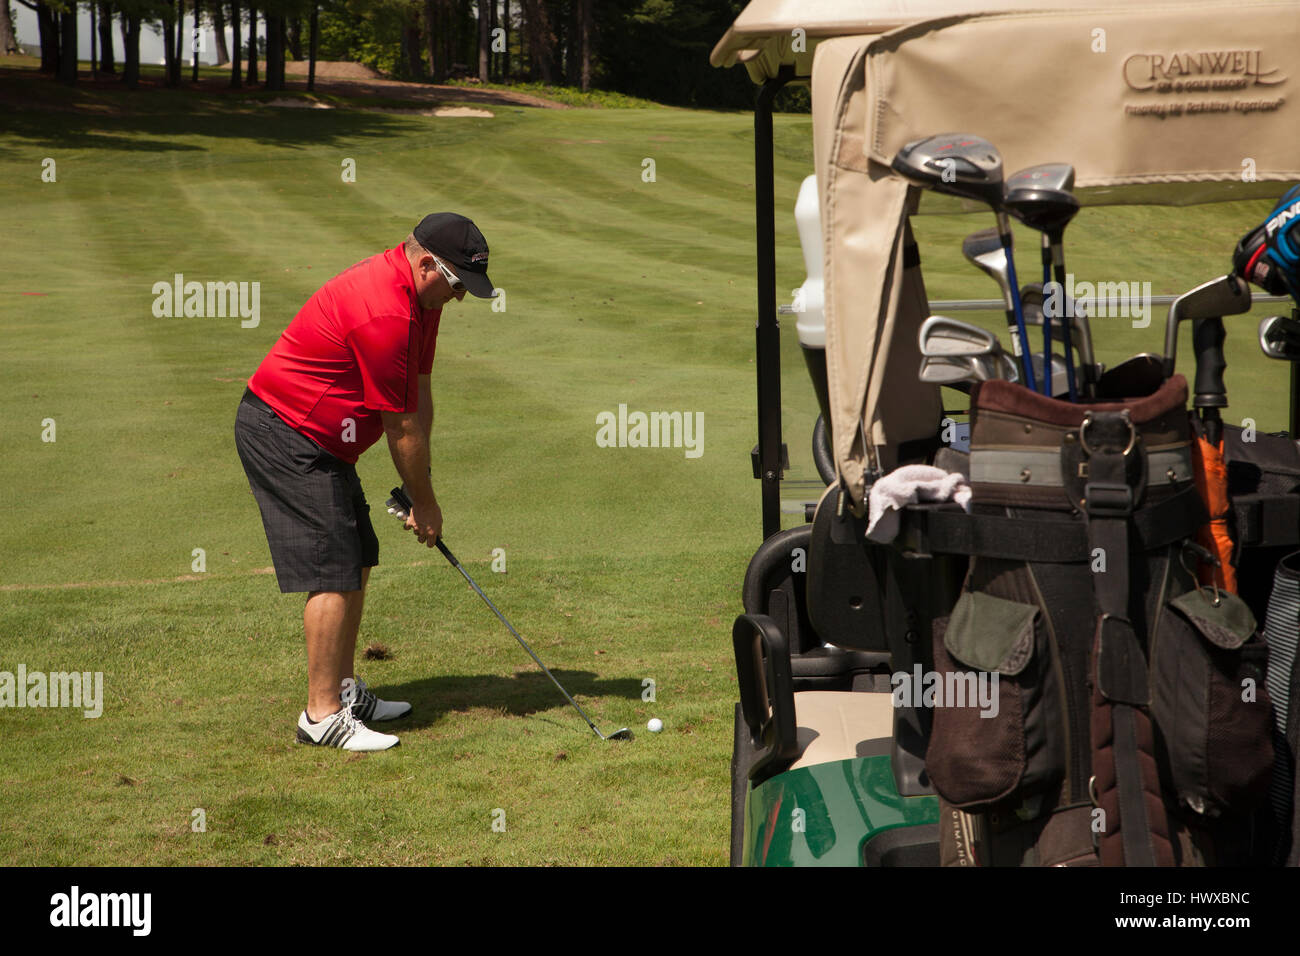 Golf on a sunny day. - Stock Image